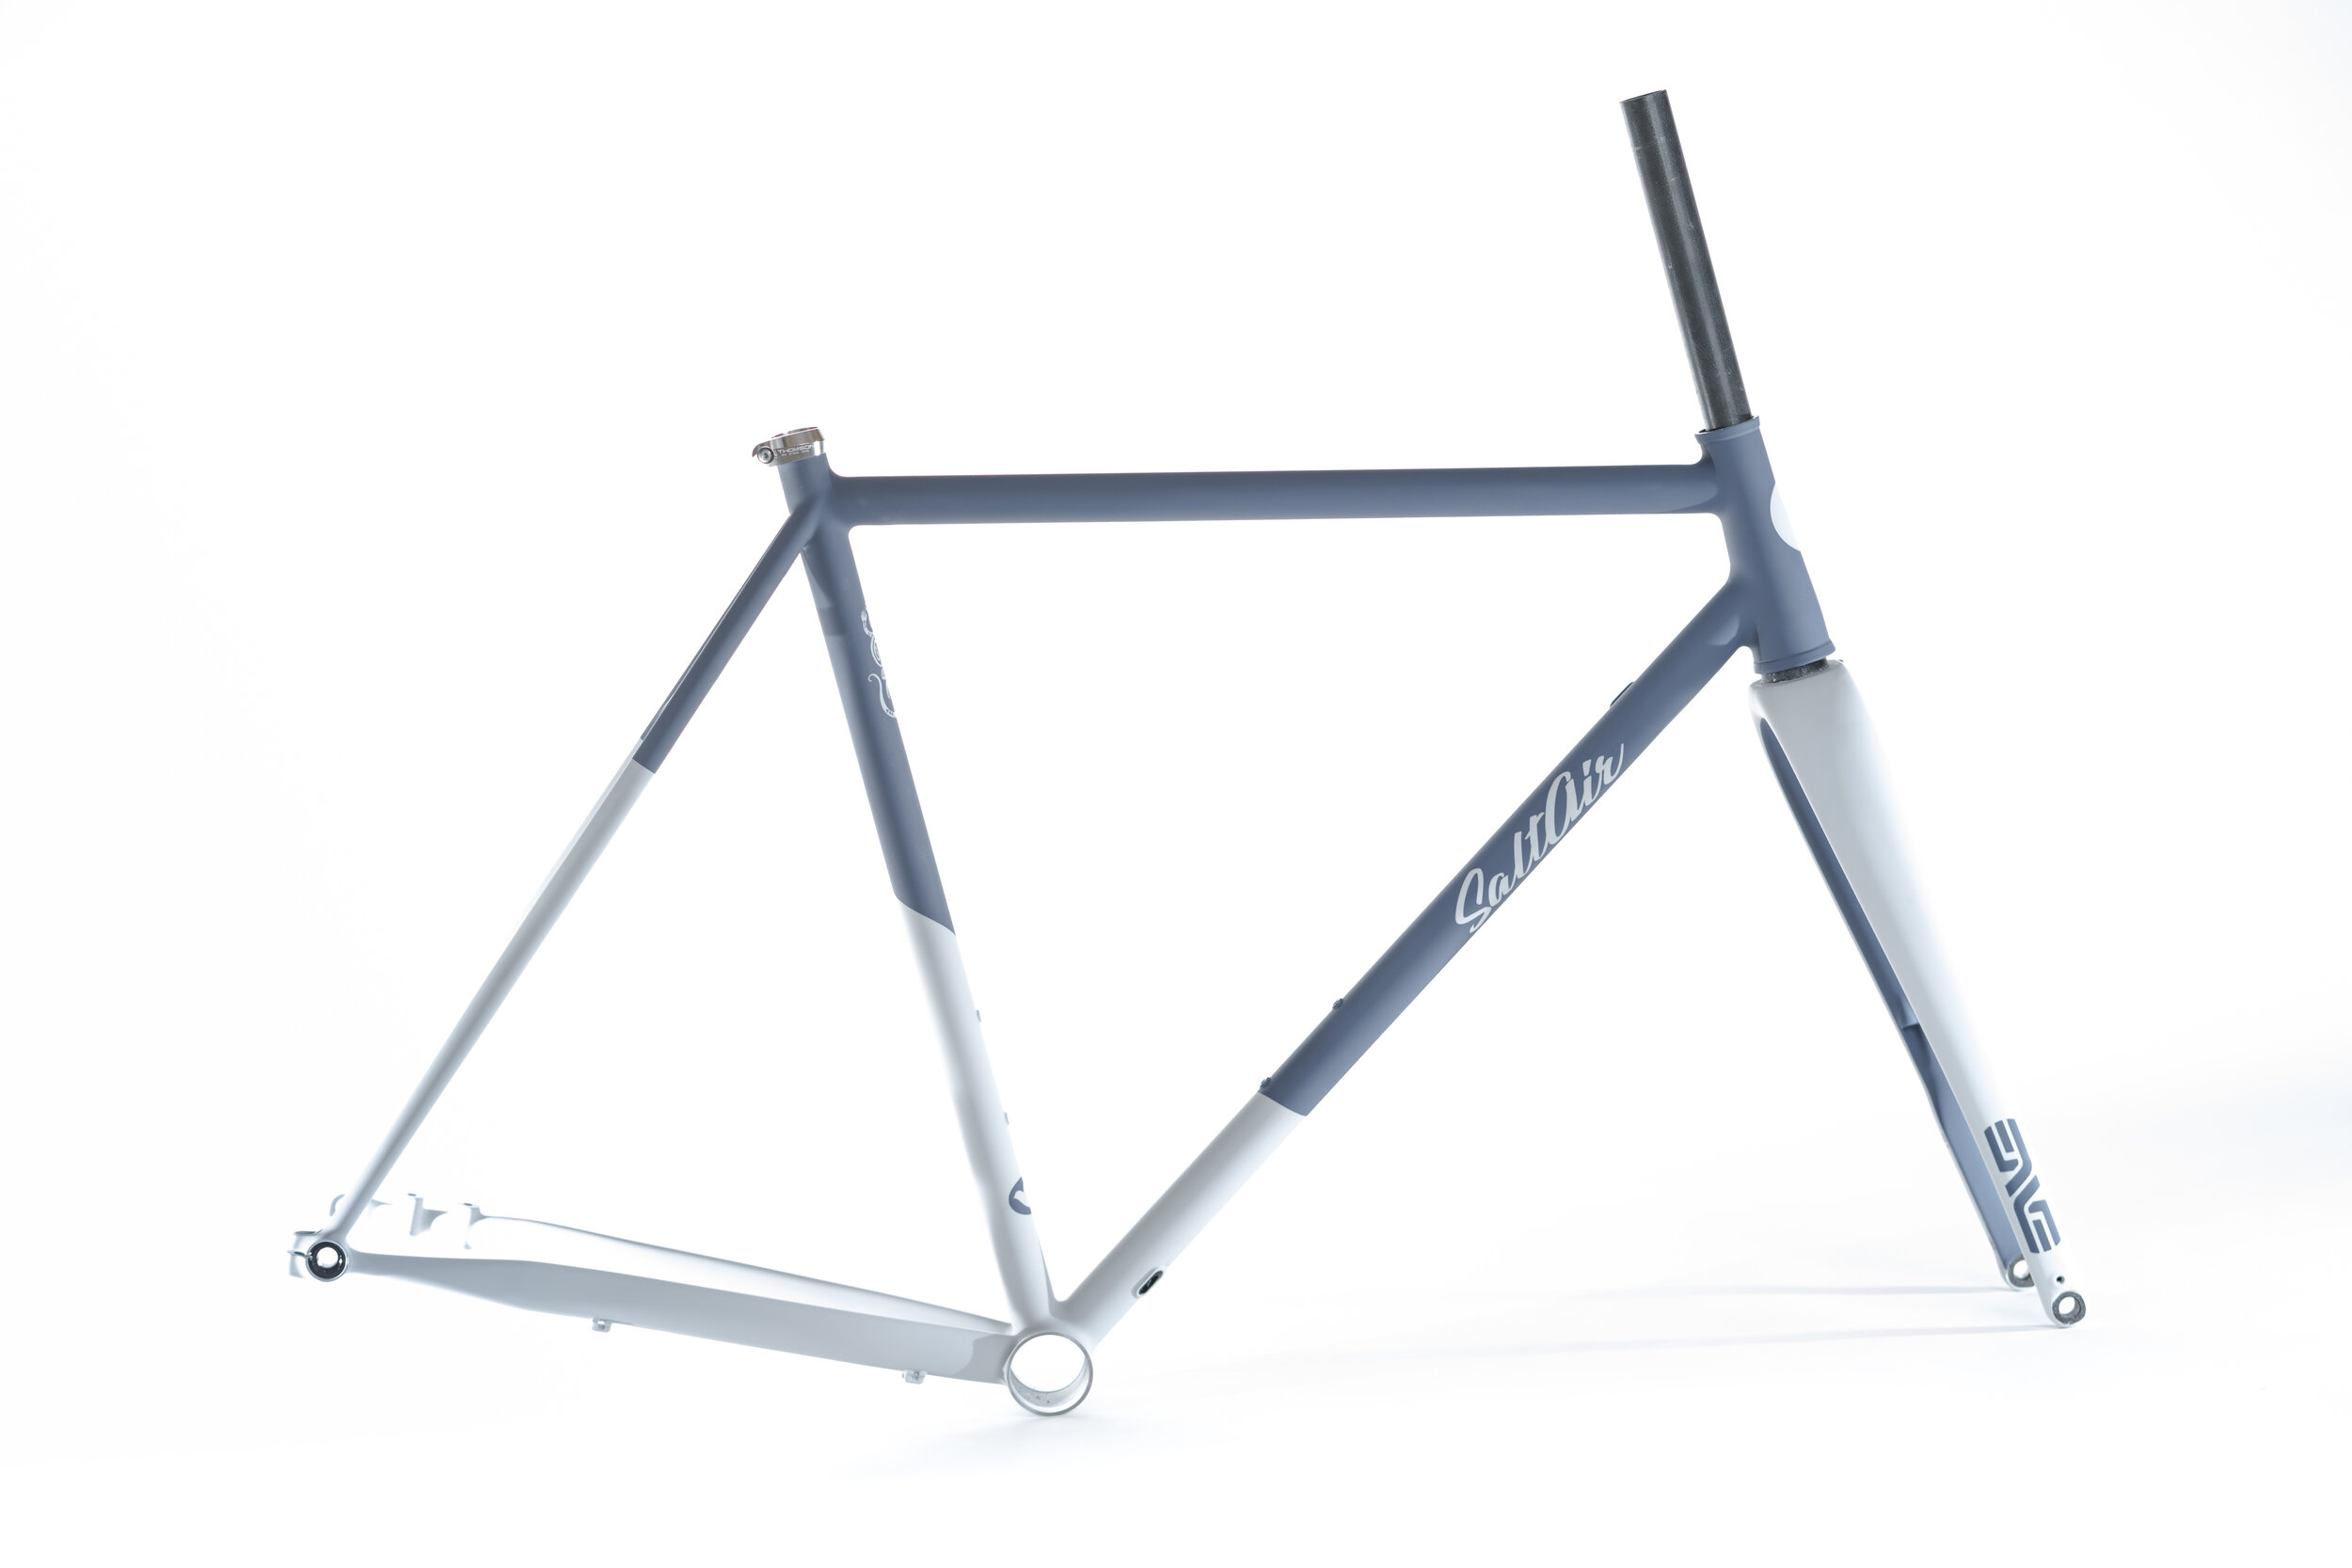 Lizard King Cyclocross frame & ENVE carbon fork: $2,175 (as pictured)